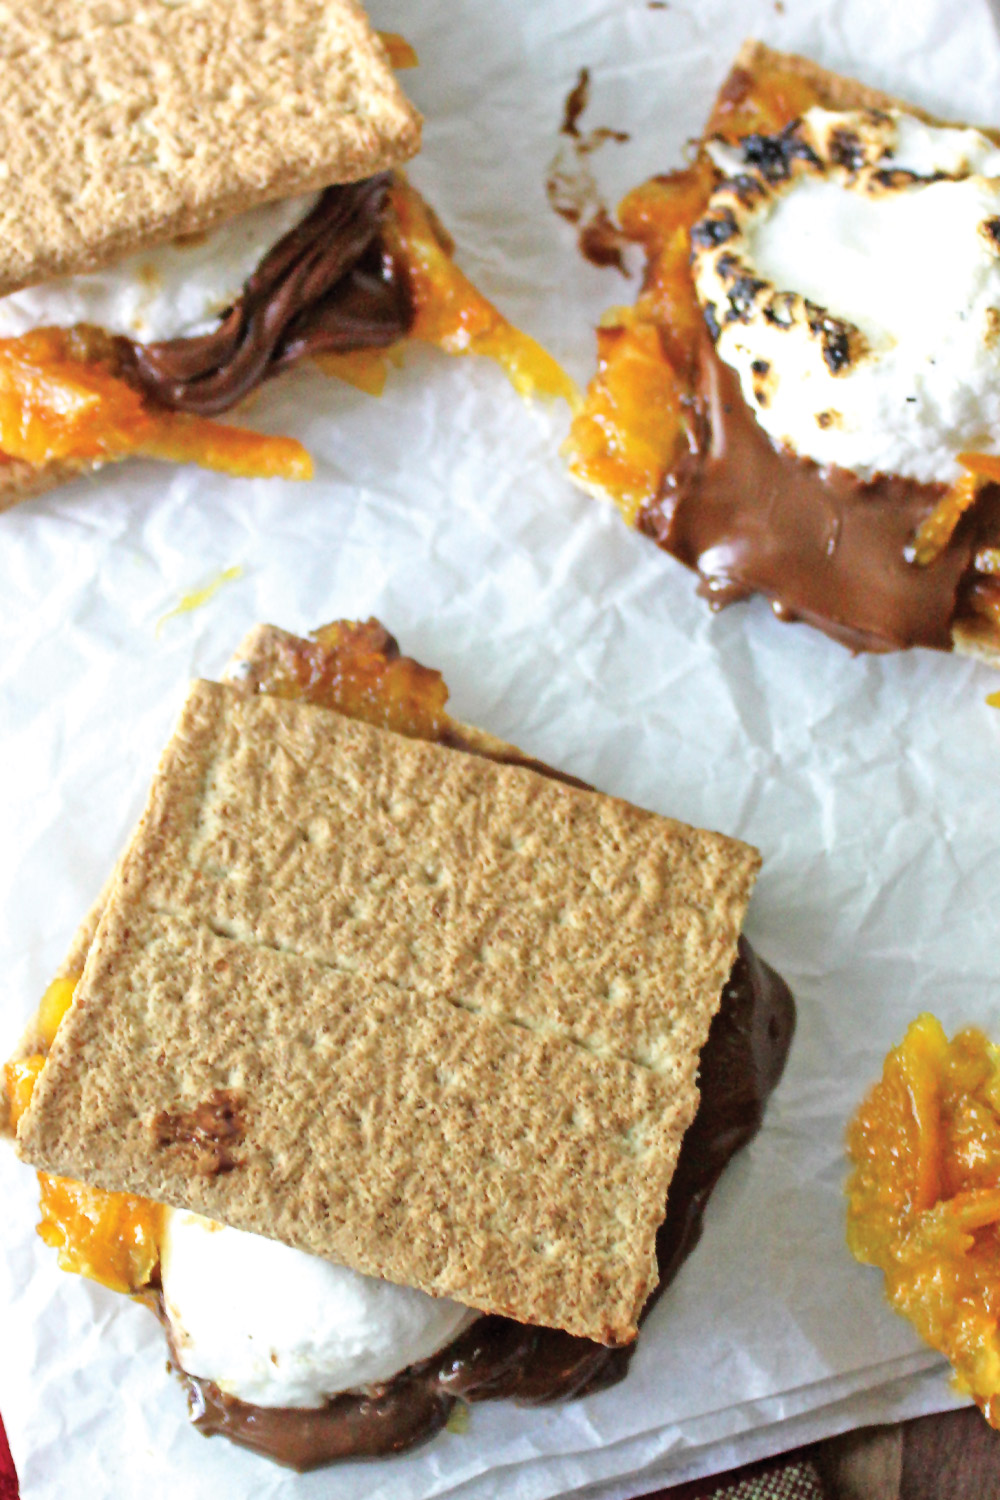 Orange marmalade smores with melted chocolate, roasted marshmallows perched on graham crackers resting on crumbled parchment paper